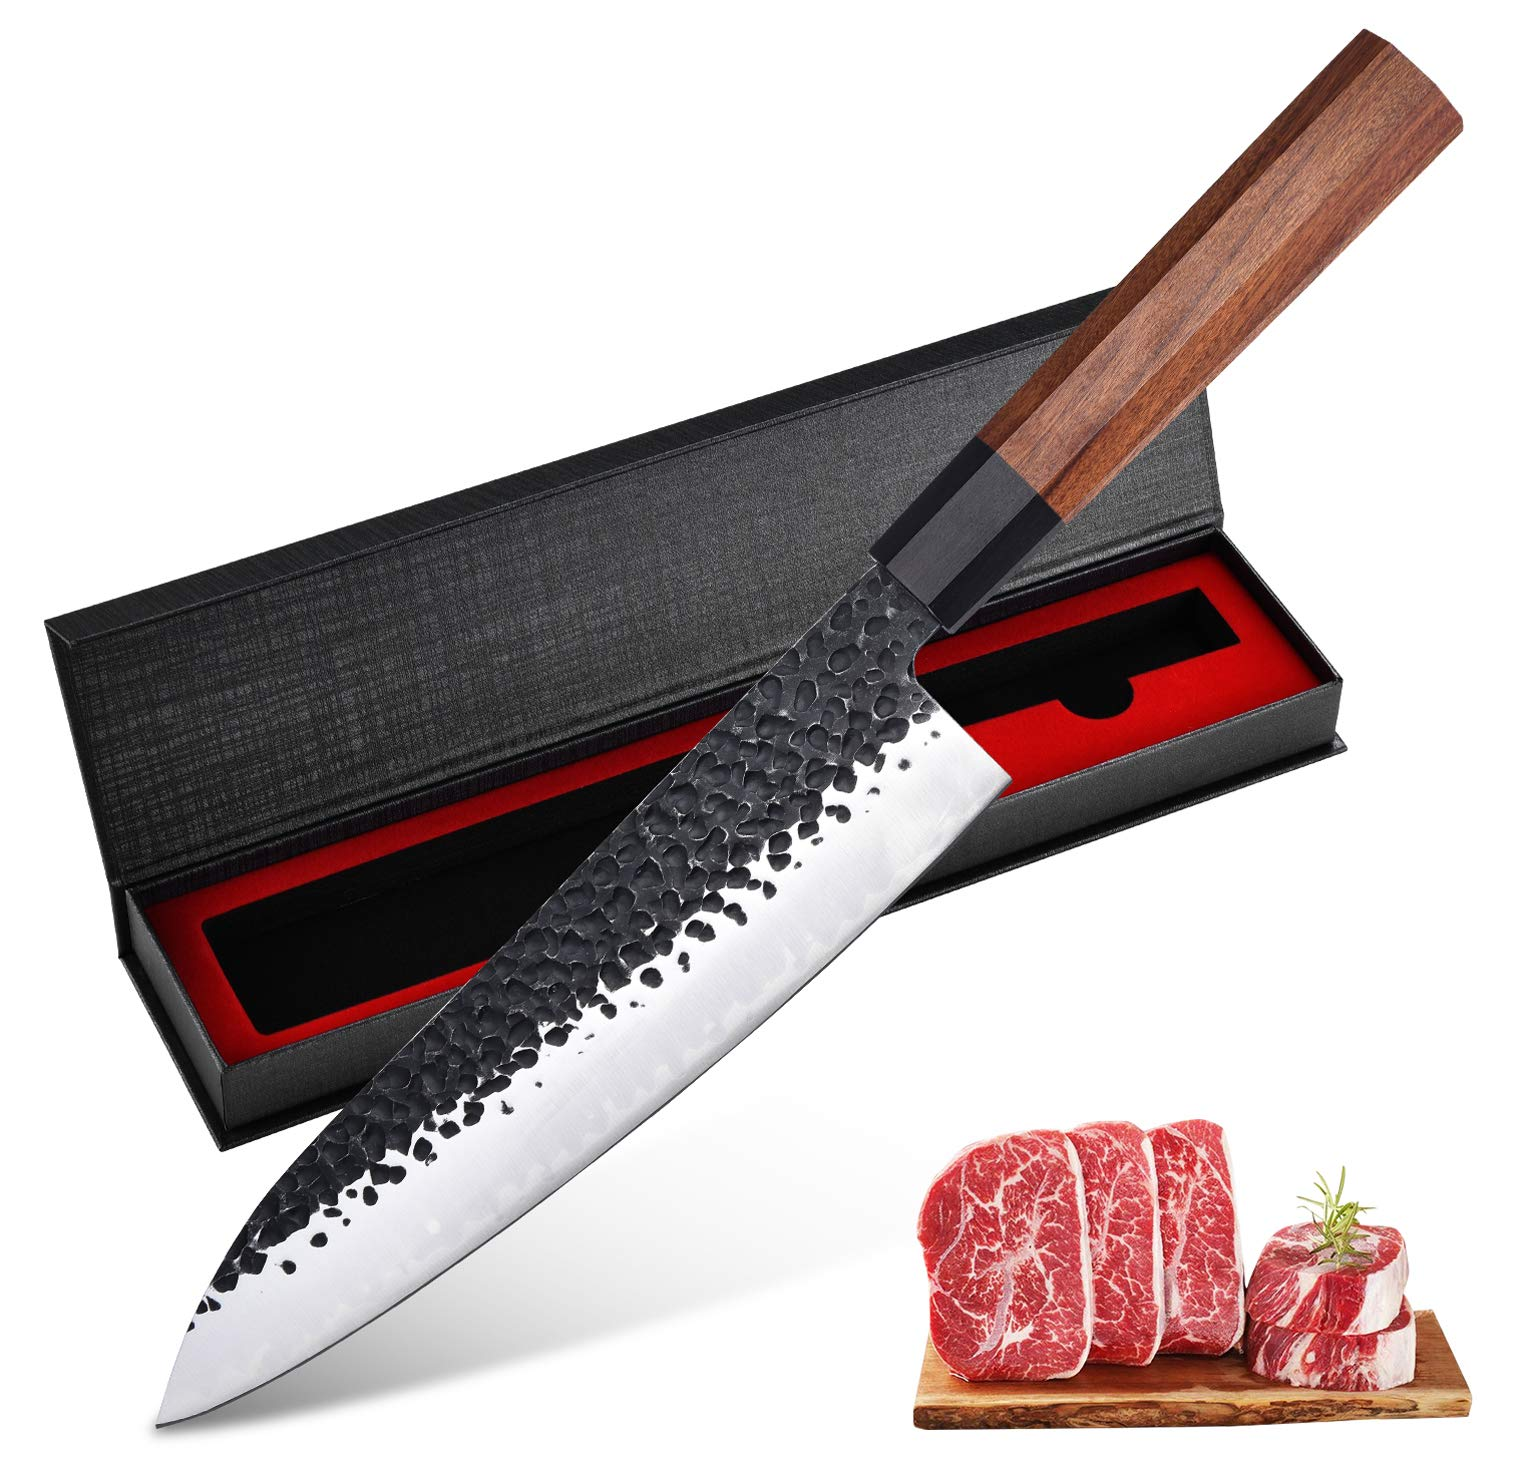 8 Inch Chef Knife Professional Japanese Chef Knife 3 layers 9CR18MOV Clad Steel Japanese Kitchen Knives Gyuto Knife Sushi Knife for Kitchen